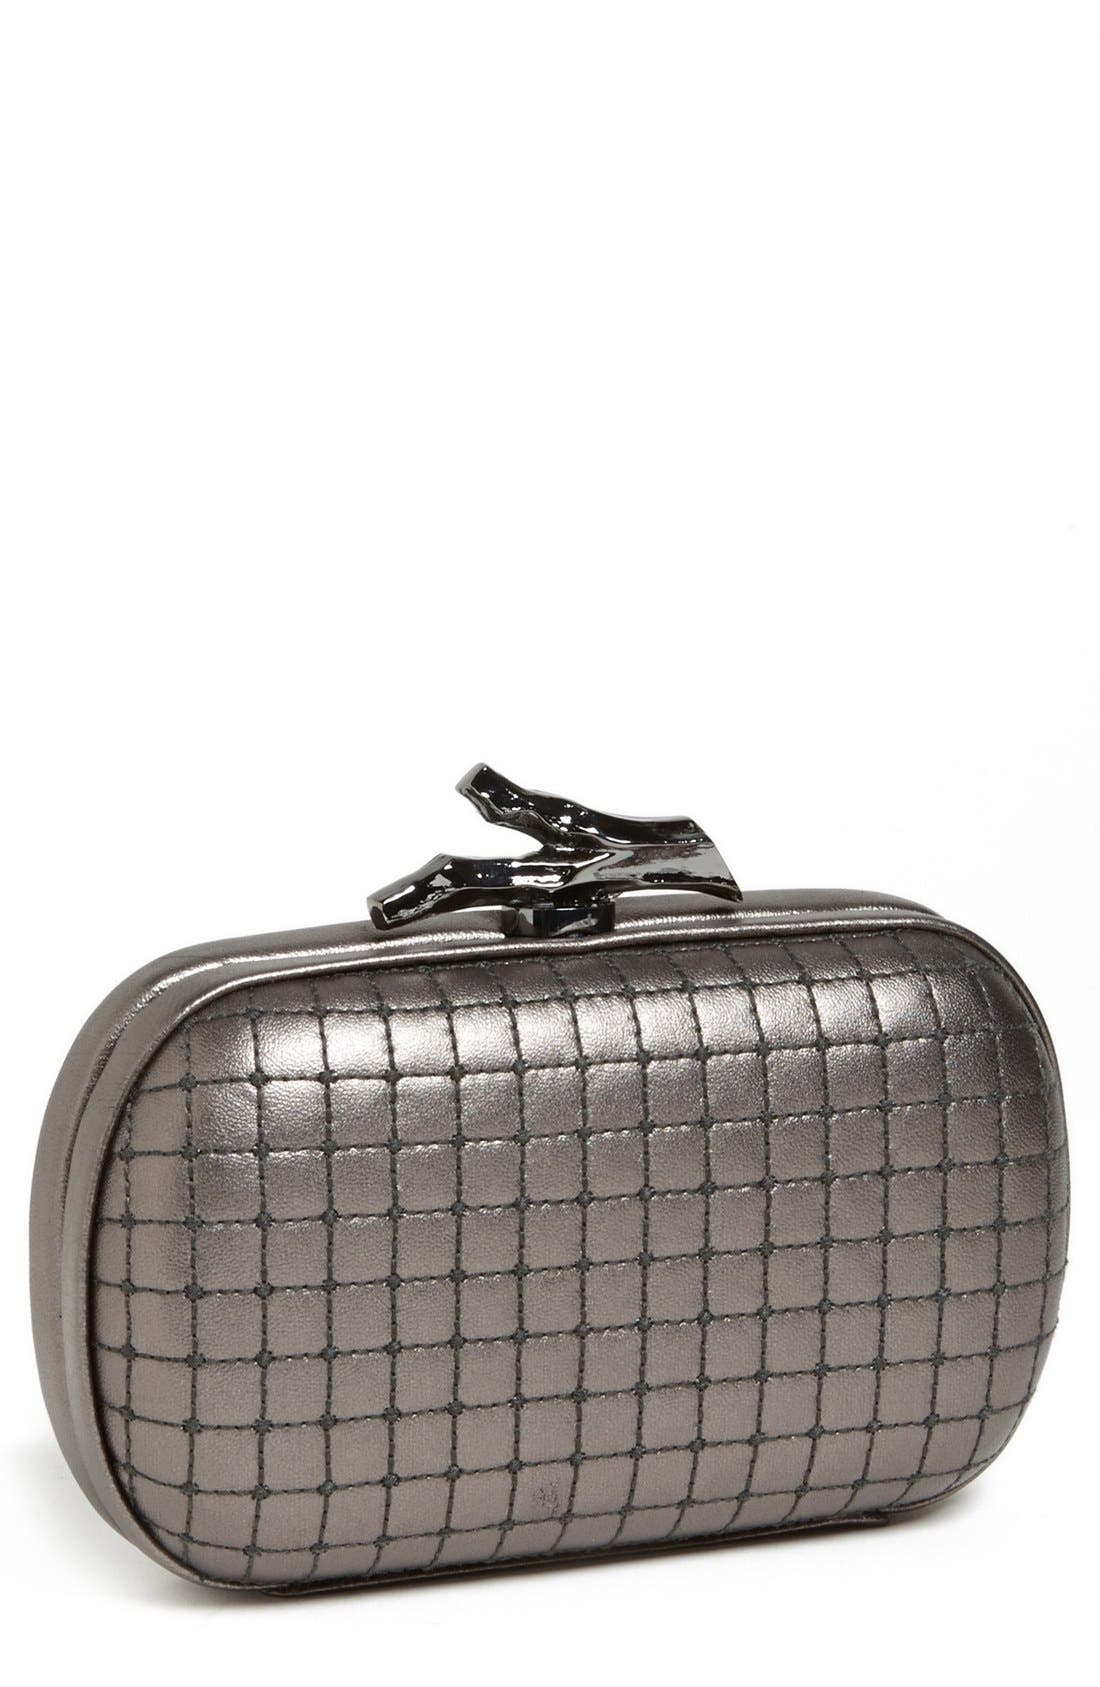 Alternate Image 1 Selected - Diane von Furstenberg 'Lytton - Small' Quilted Metallic Leather Clutch